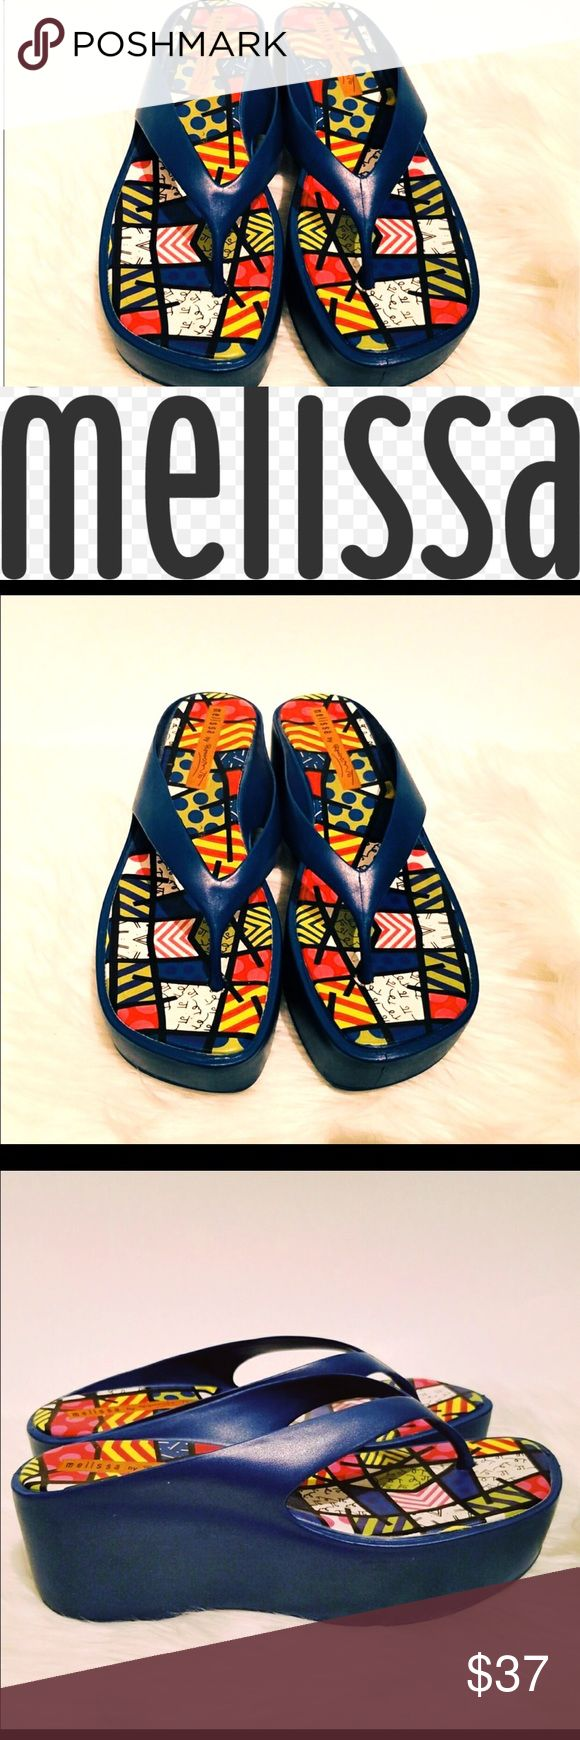 Melissa Platform Sandals Size 8 Excellent preowned condition 😊 no signs of wear  Clean from a smoke & pet free home Original from Brazil Melissa Shoes Sandals